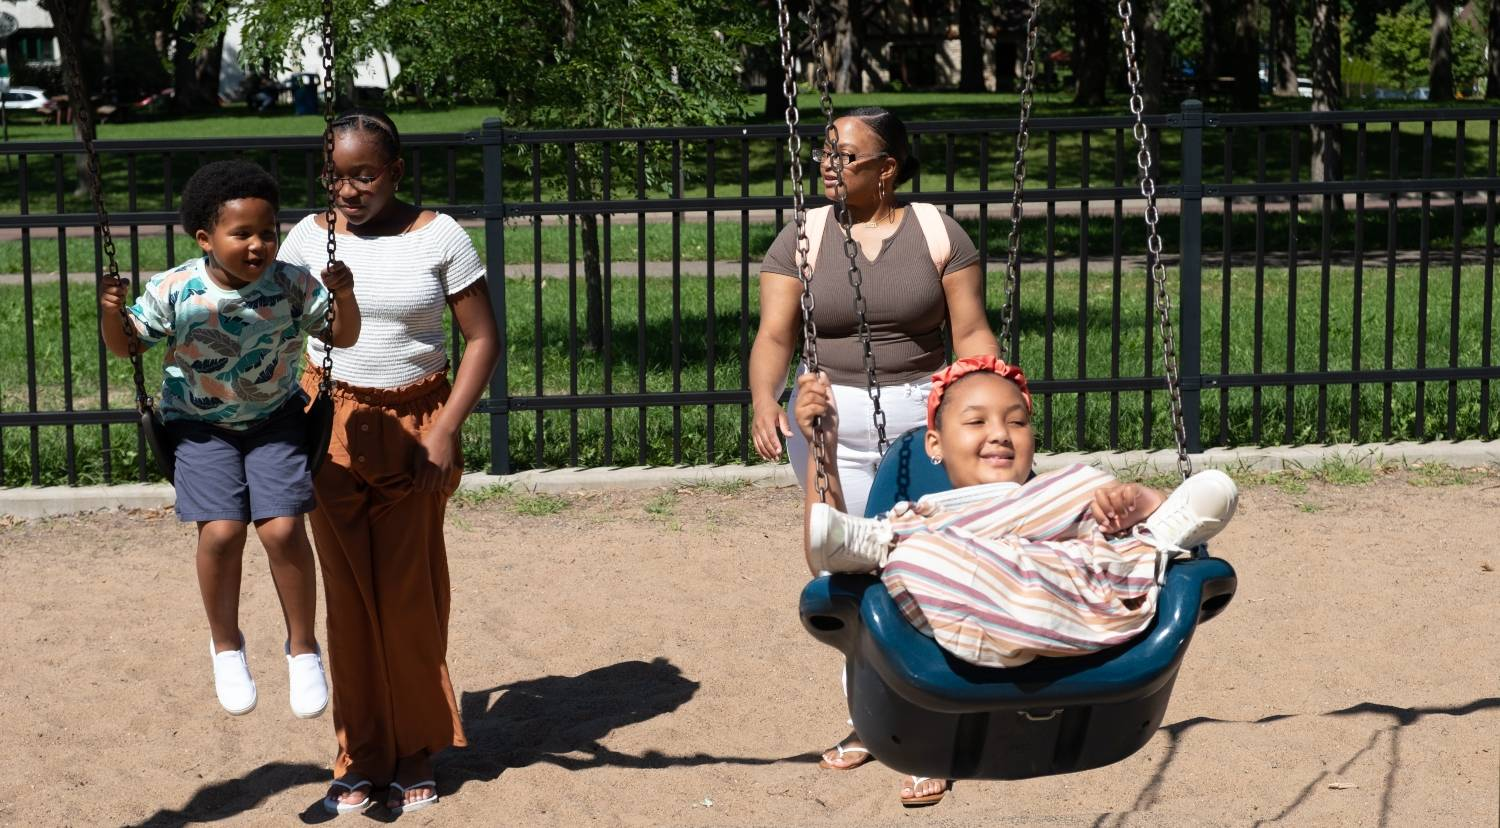 Za'Nii and her brother Amir on the swings at the park